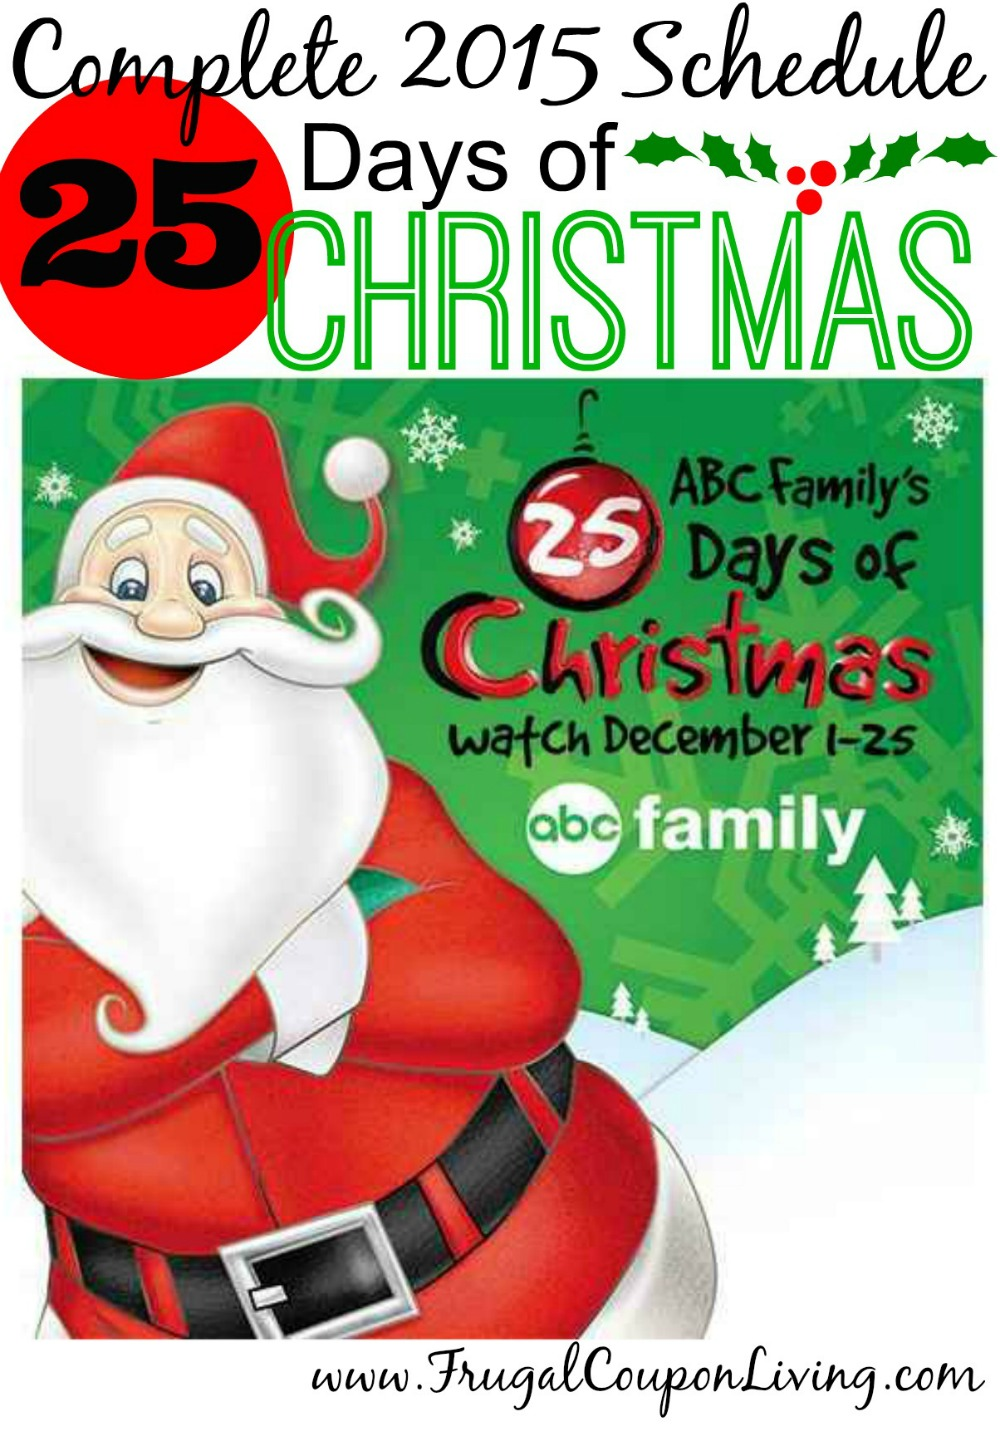 Abc Family 25 Days Of Christmas.Abc Family 25 Days Of Christmas 2015 Schedule